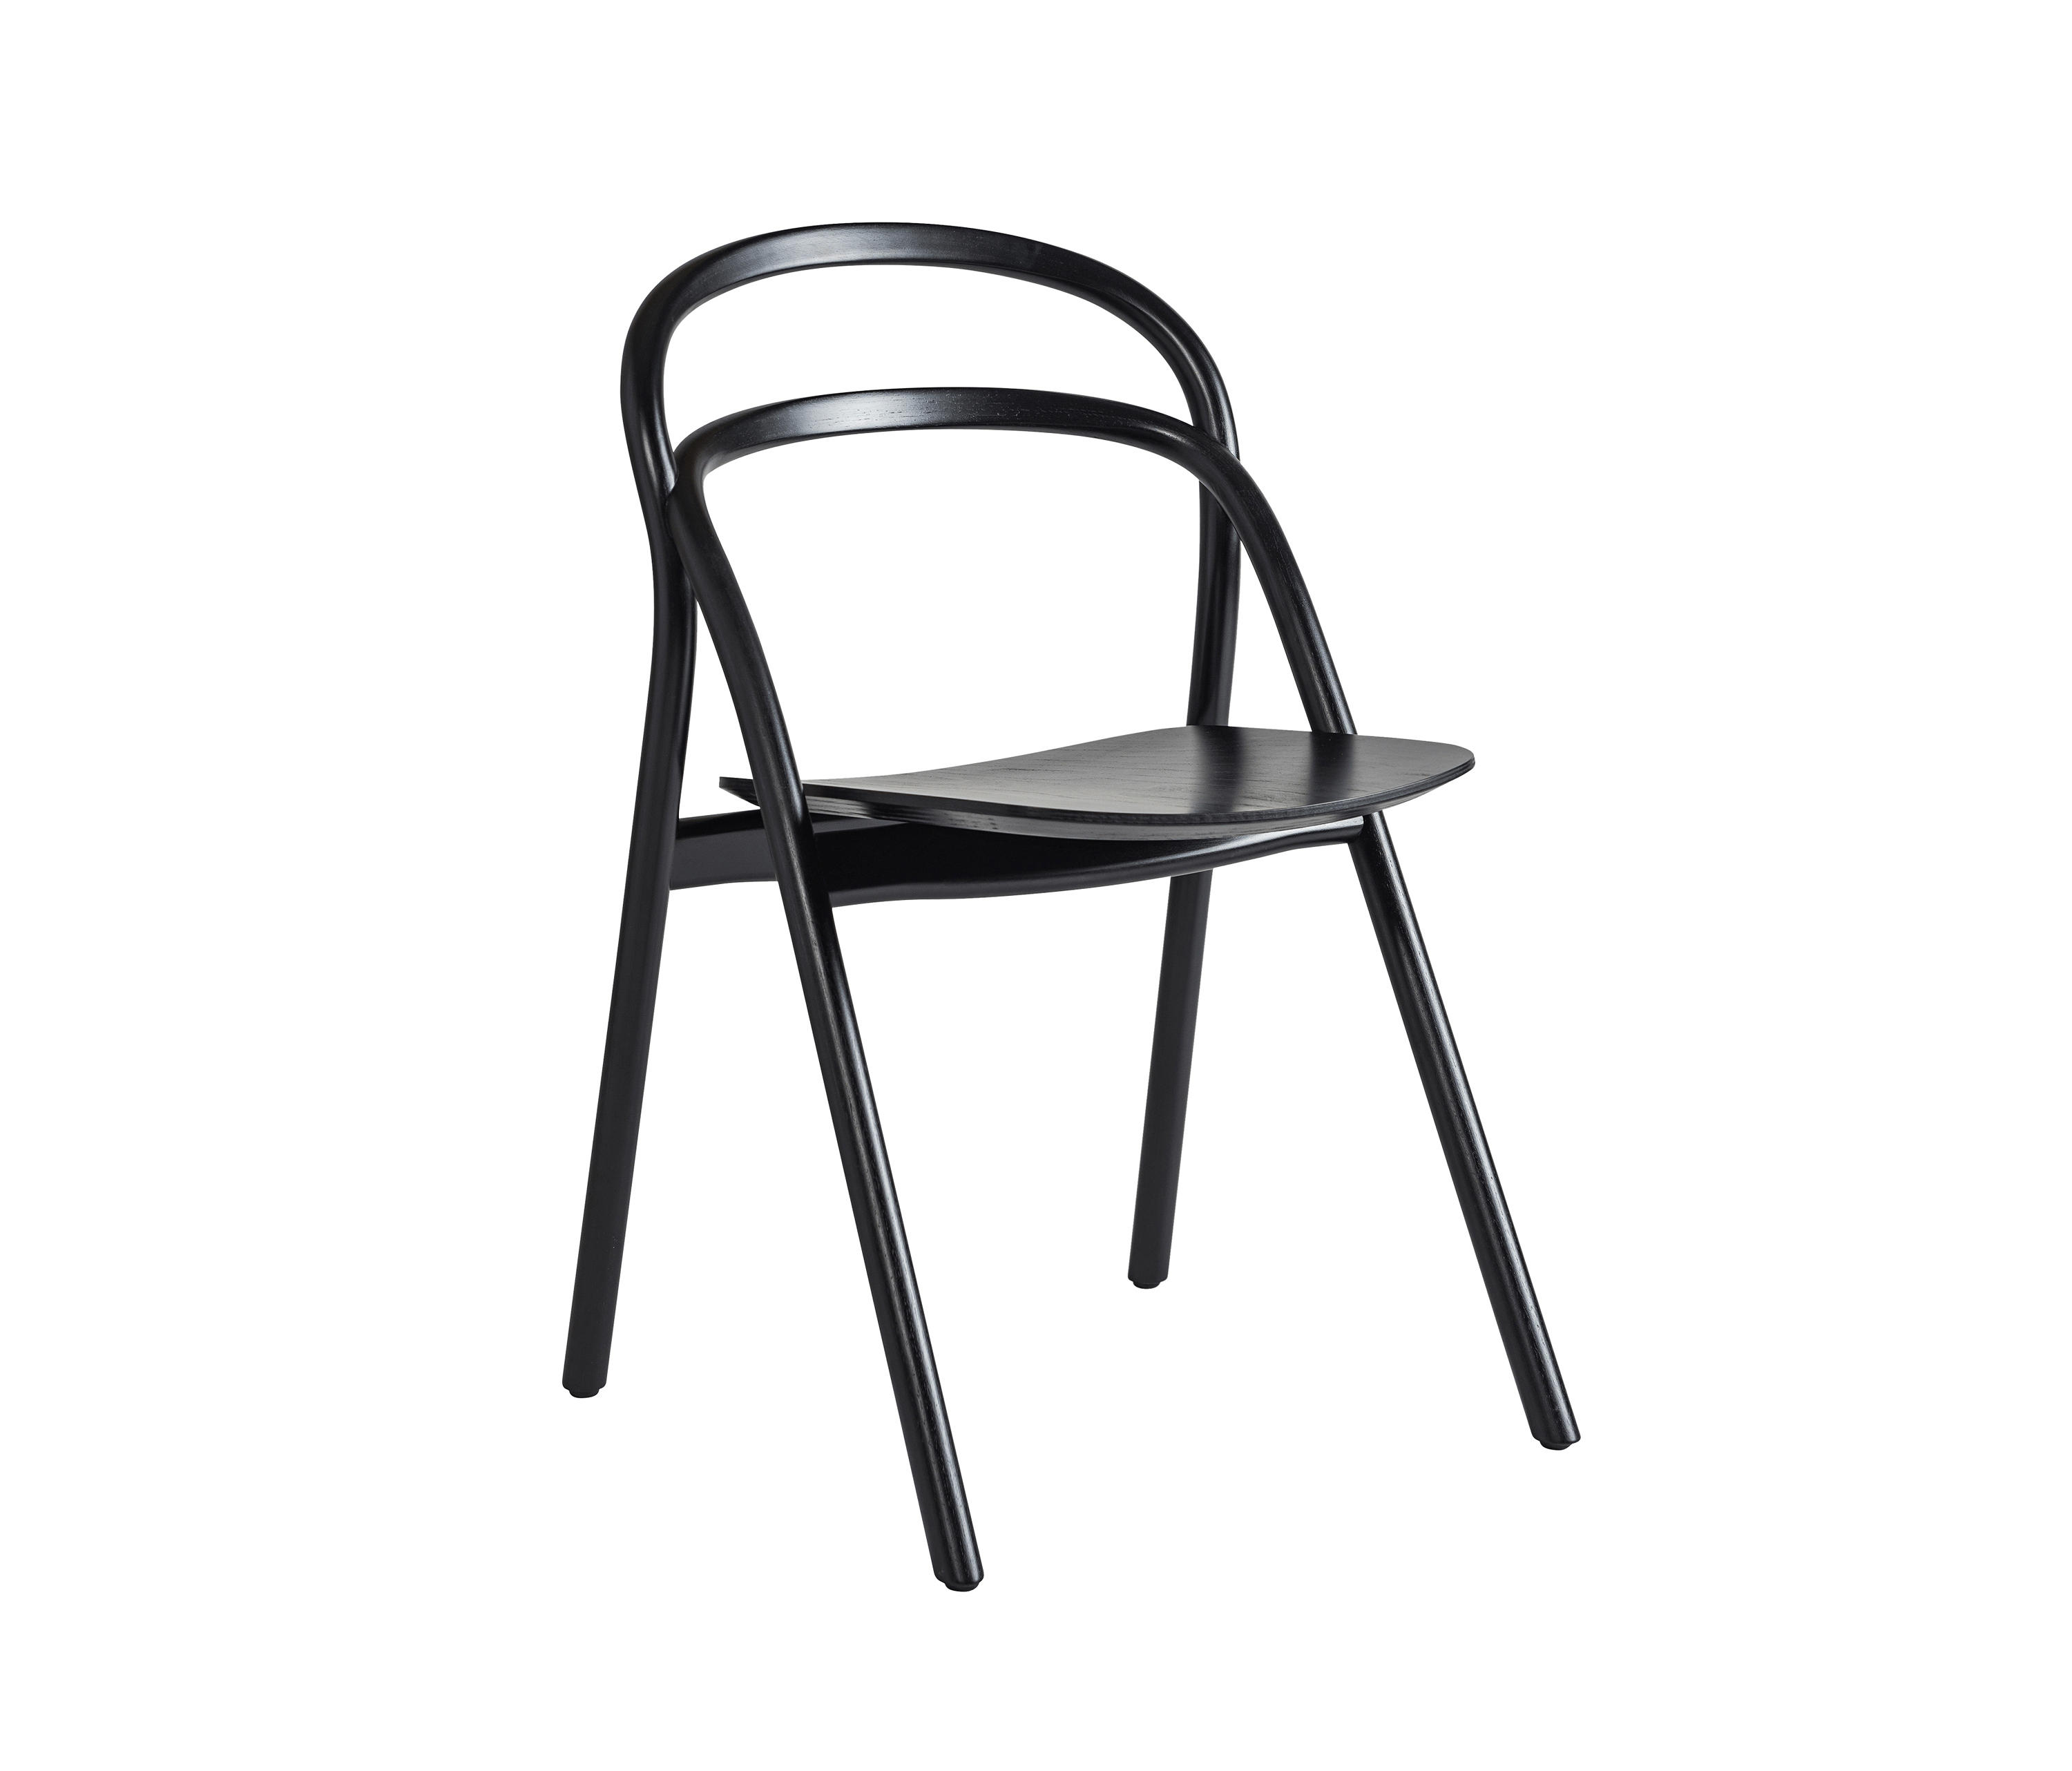 Studio Chairs Udon Chair Black Chairs From Hem Design Studio Architonic